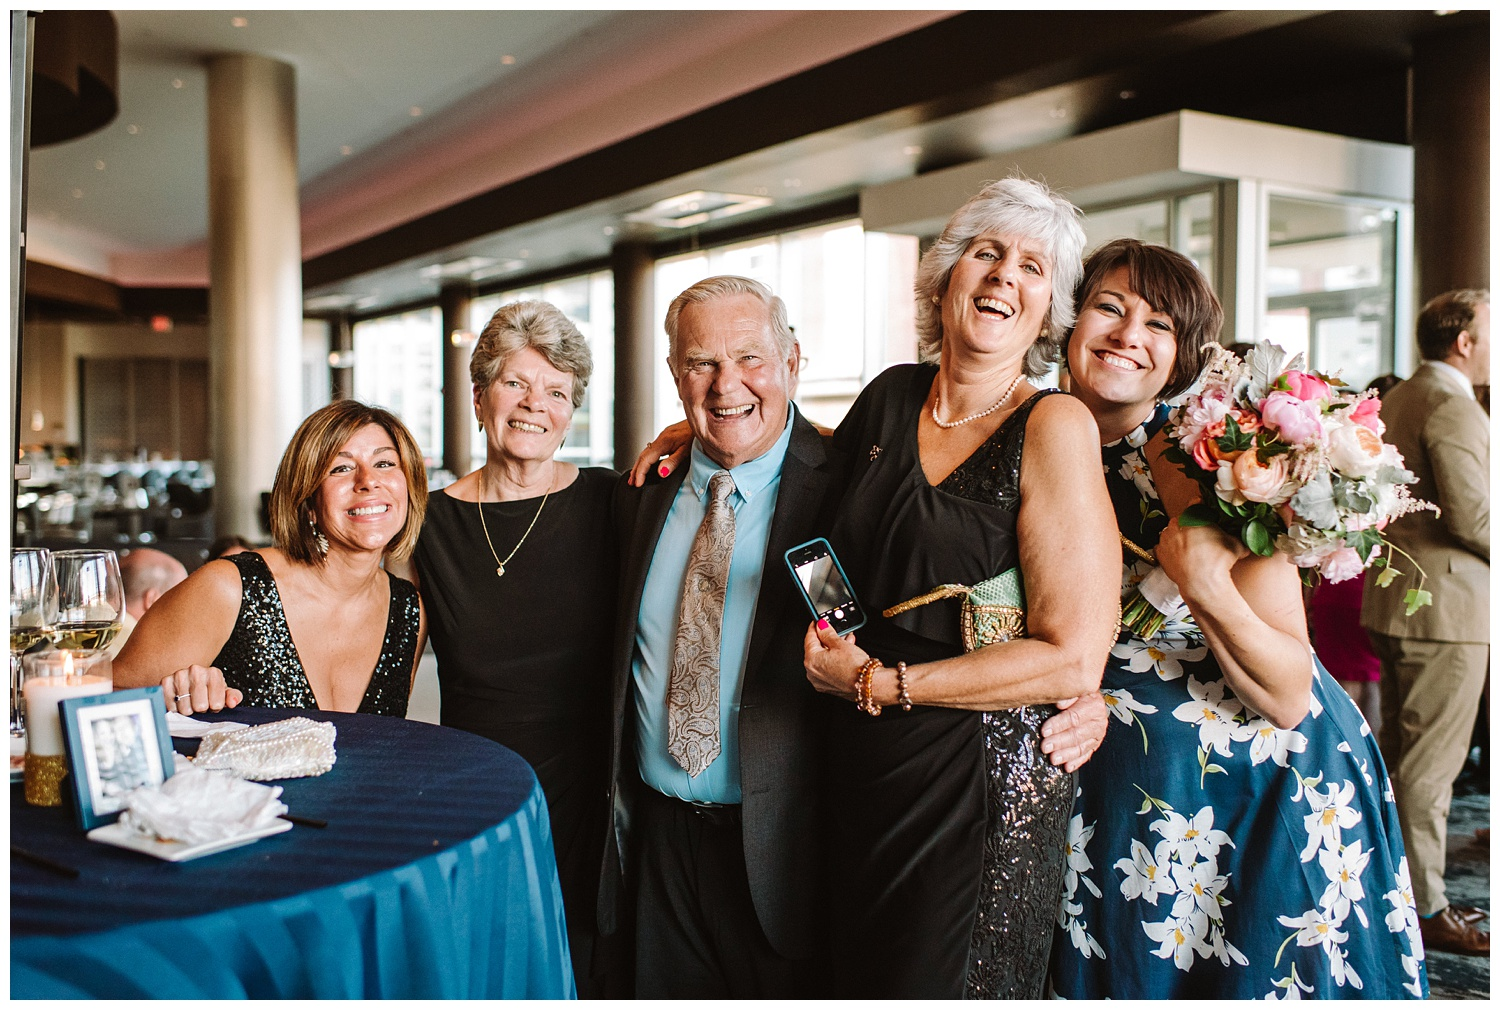 Renaissance Hotel Gillette Stadium Wedding Photographer88.jpg